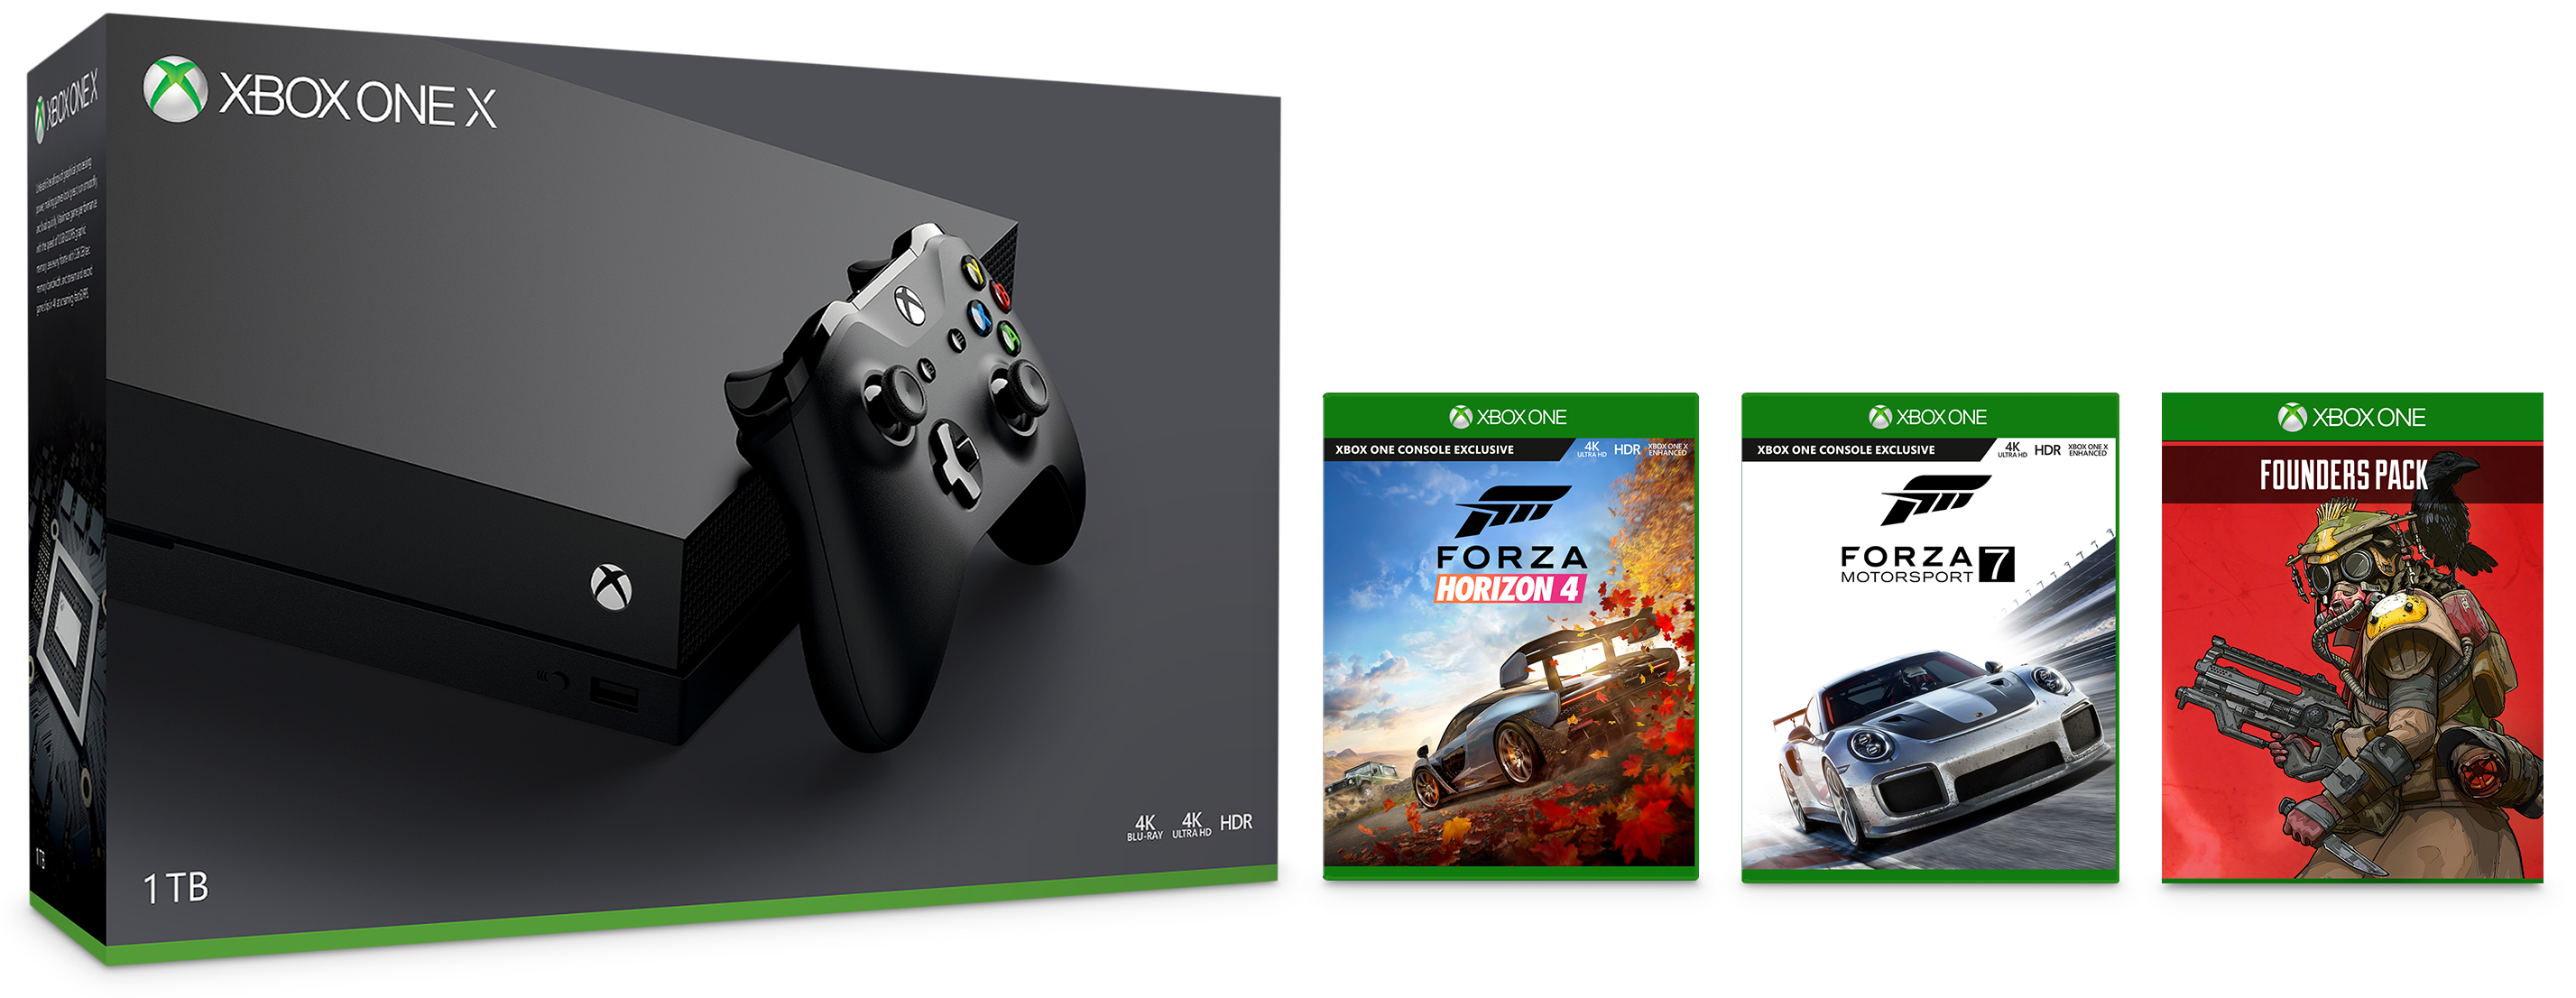 Xbox One X 1TB Console Forza Horizon 4 Bundle and Apex Legends Founder's Pack